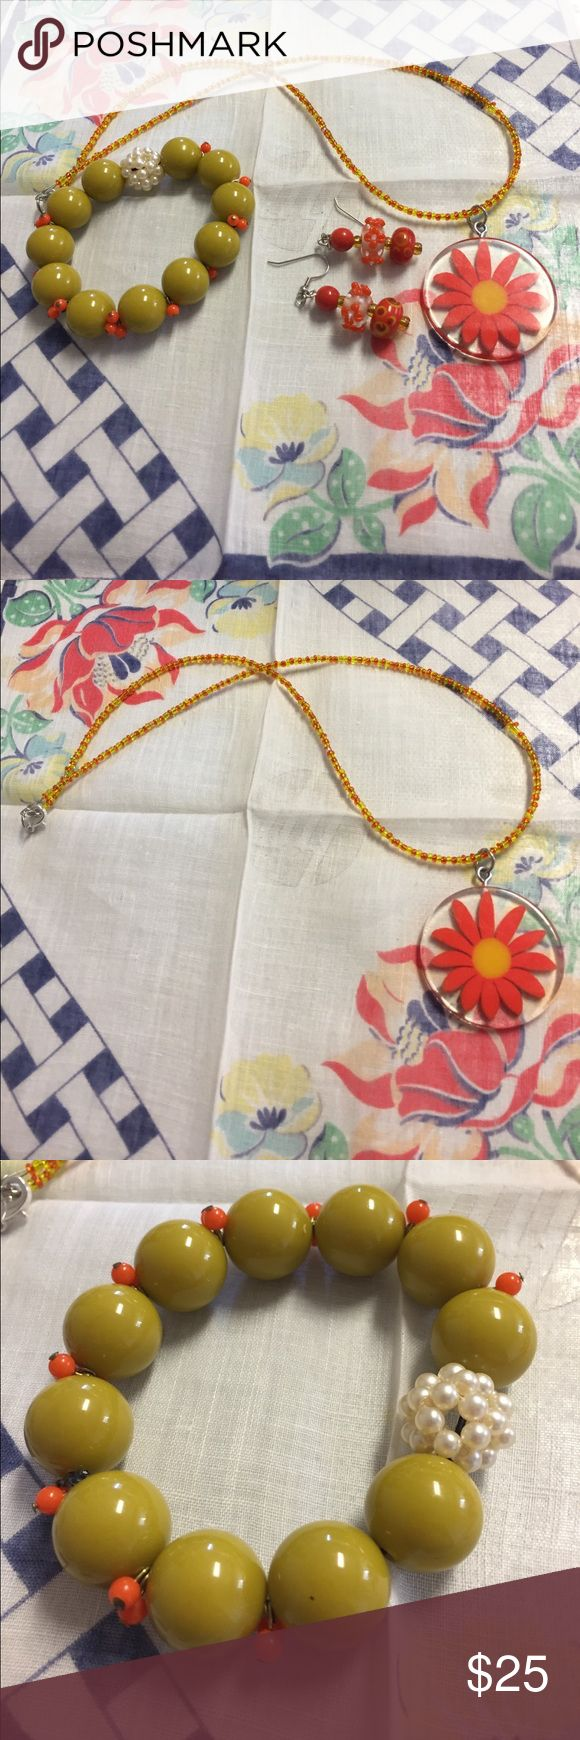 Bundle of matching necklace earrings and earrings The earrings are pierced glass Floral and polka dot pierced earring measure 1 1/4 inches. The pendant is Acrylic orange yellow daisy on Seed Beaded necklace that measures 18 inches. The pendant measures 1 3/4 inch.  The beads in the bracelet are acrylic strung on stretch cord Jewelry Necklaces